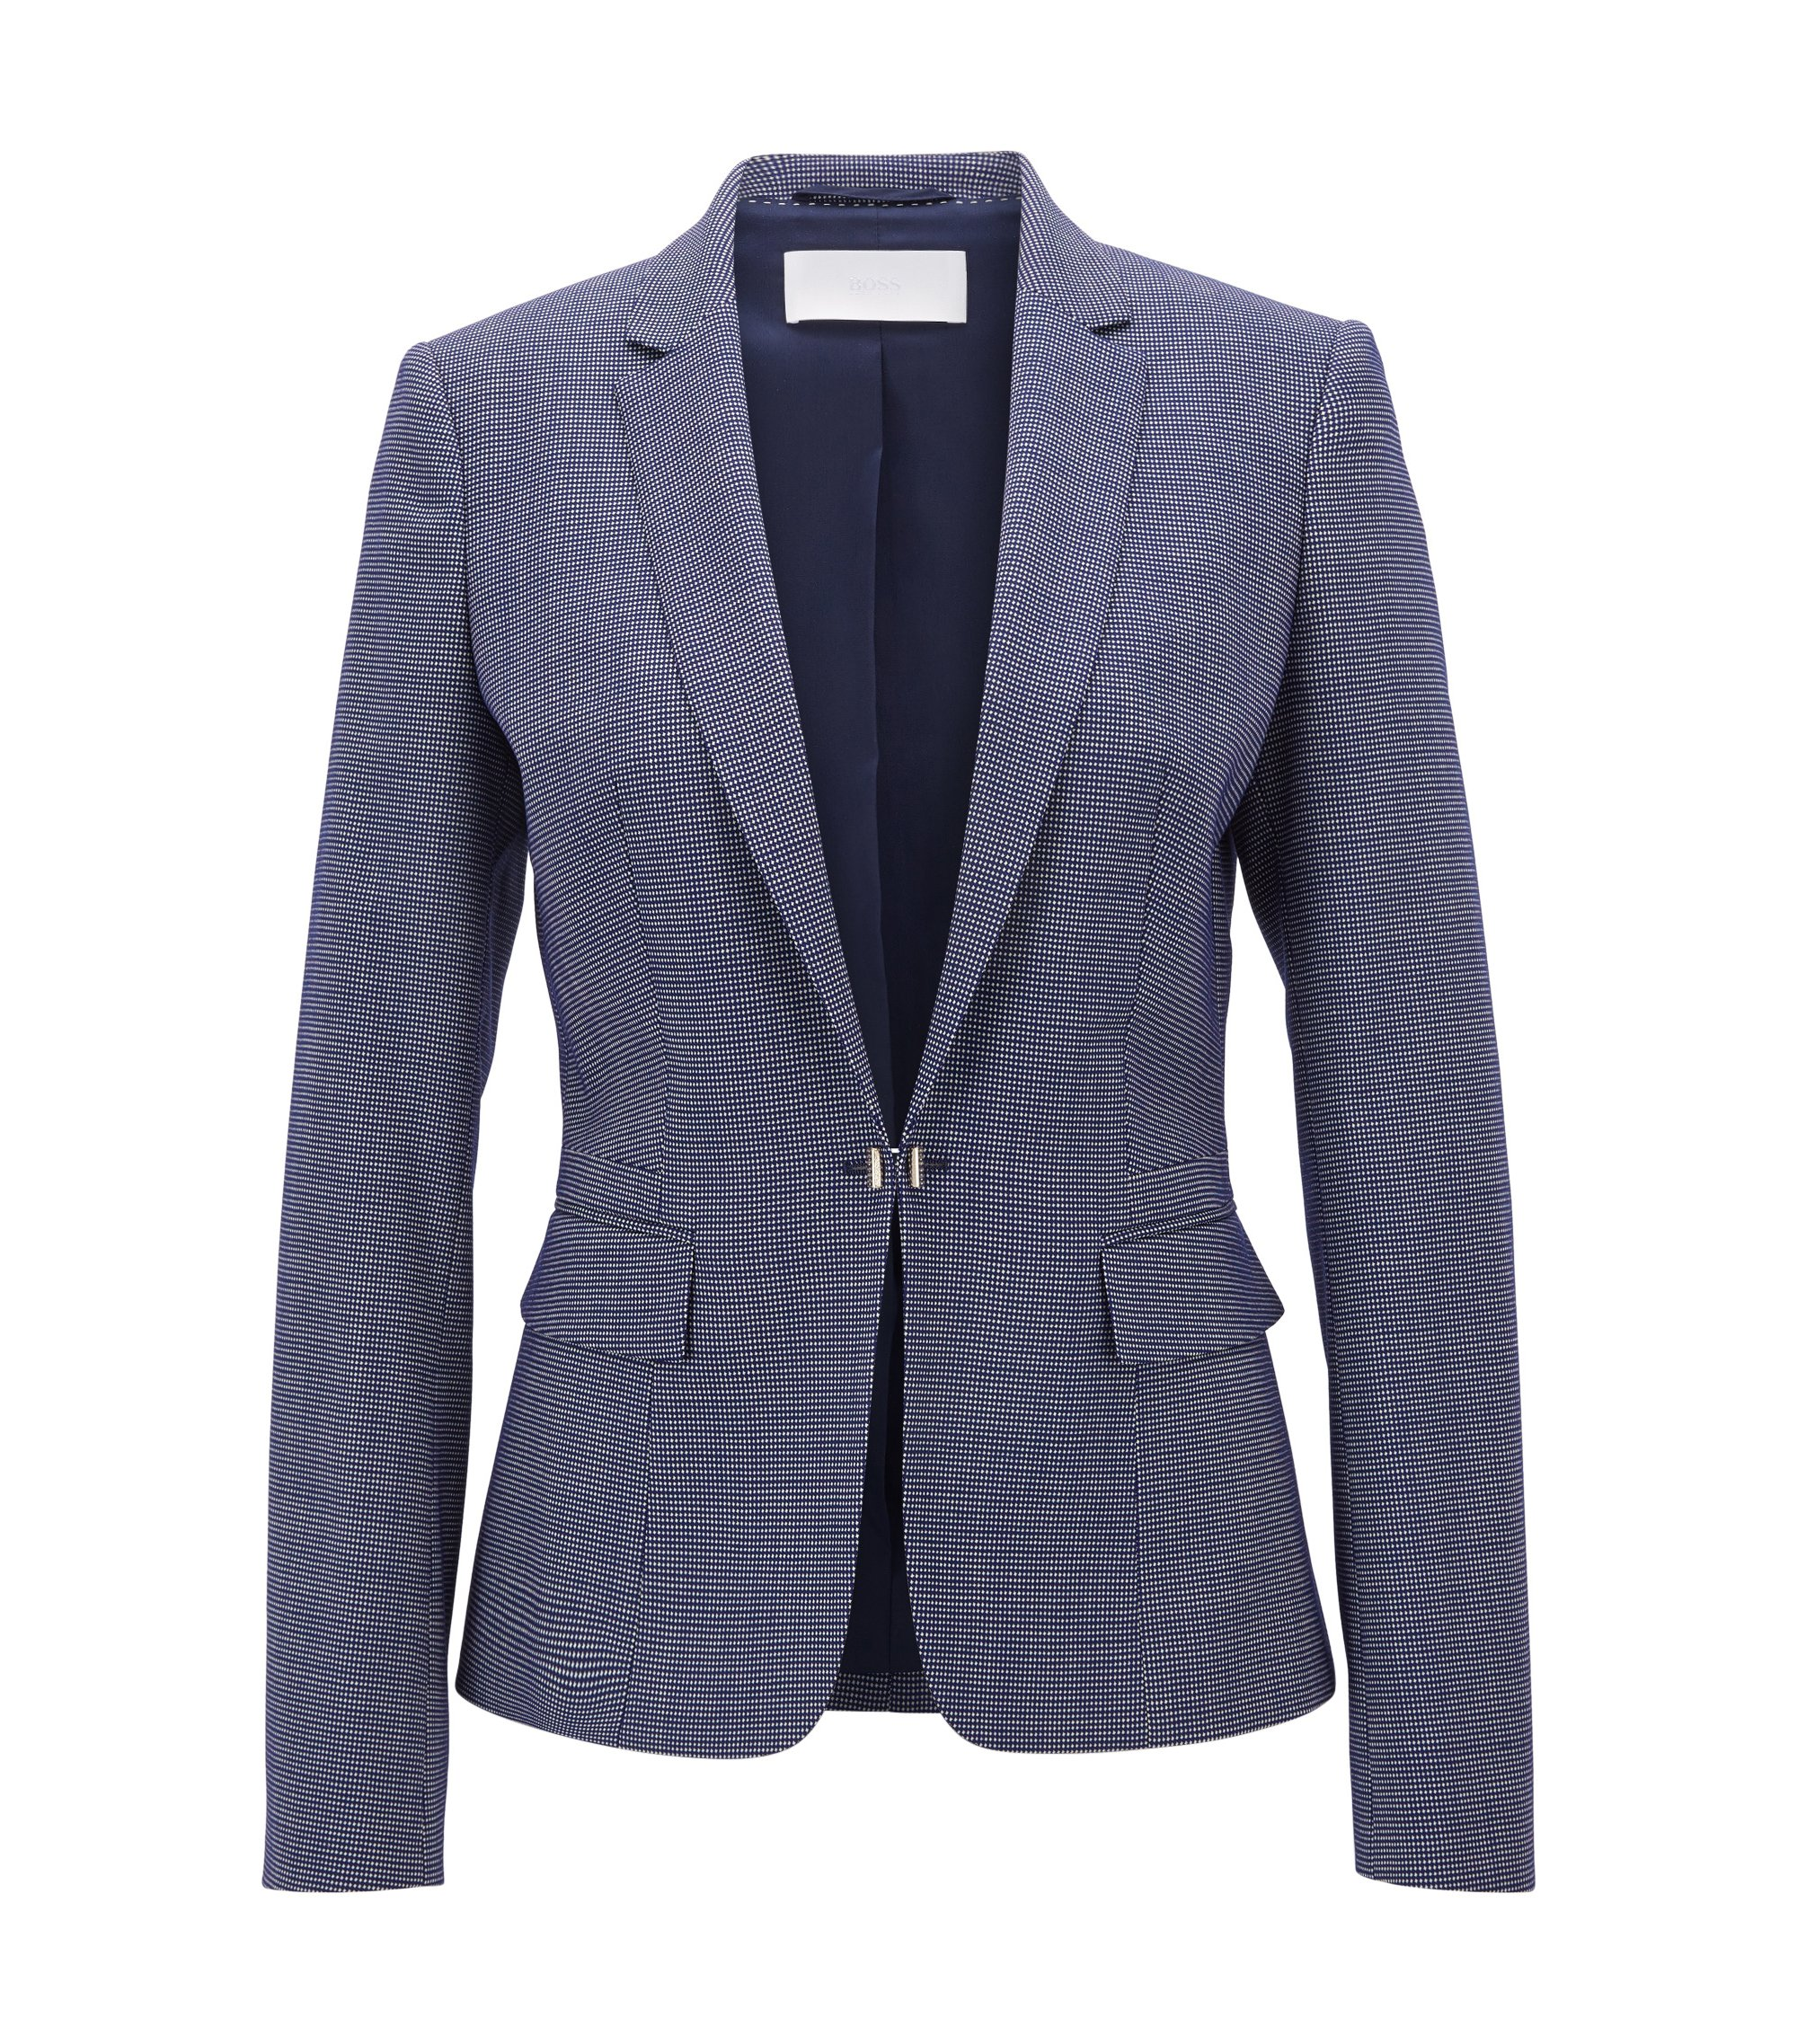 Stretch Virgin Wool Jacket | Jaflink , Patterned